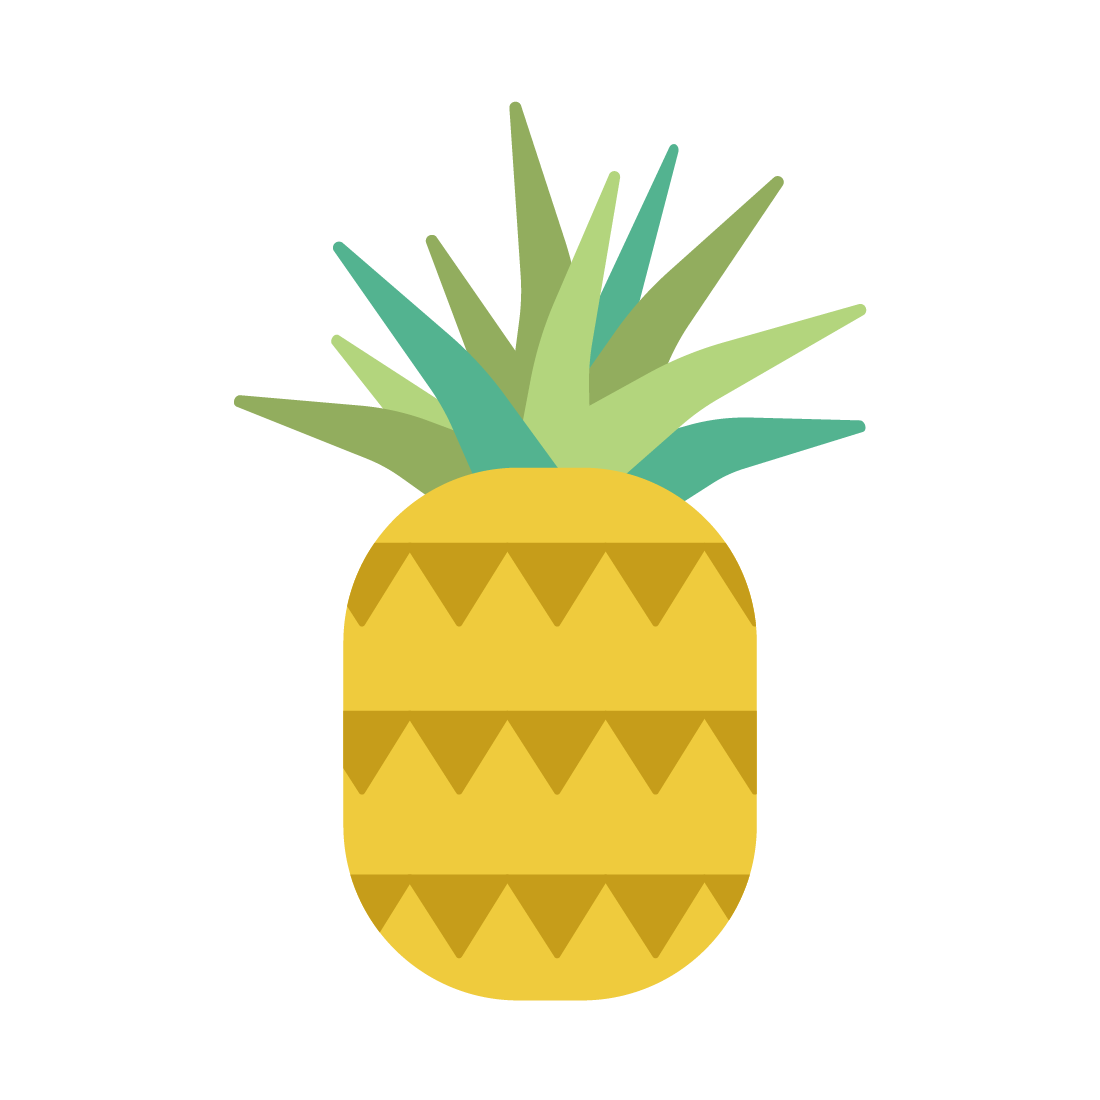 Social-Giphys_Pineapple.png